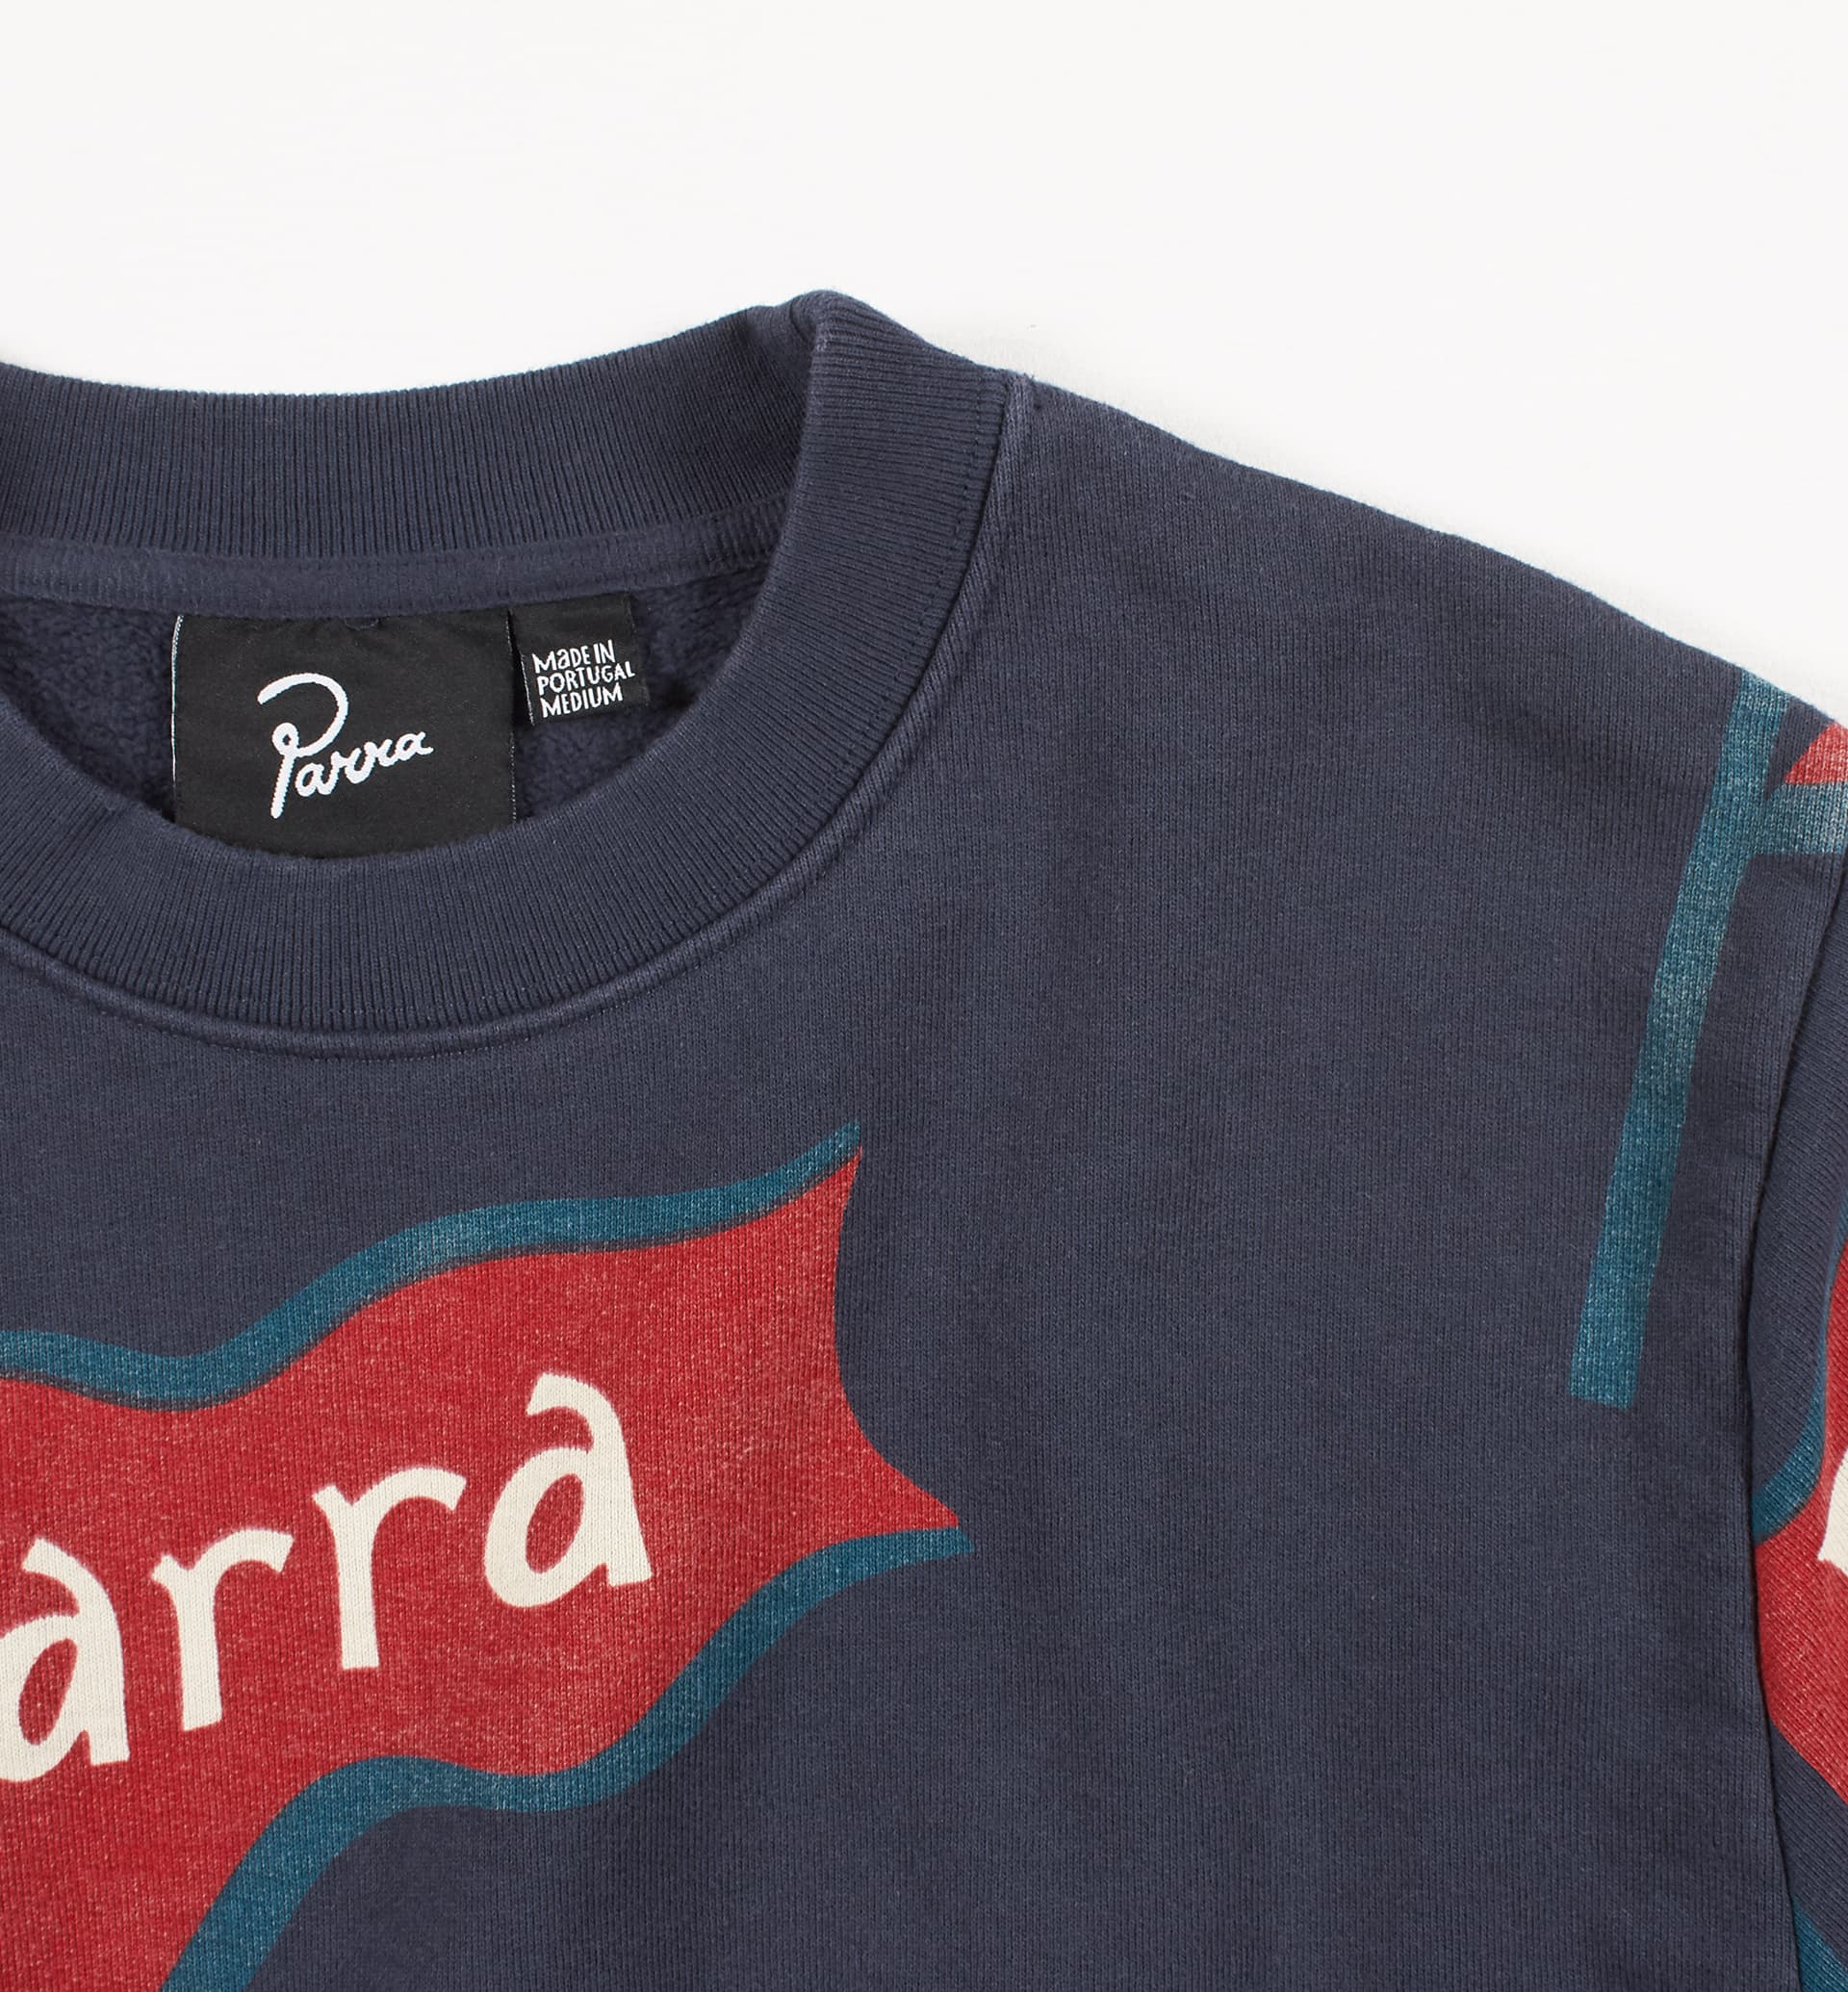 Parra - flapping flag crewneck sweatshirt